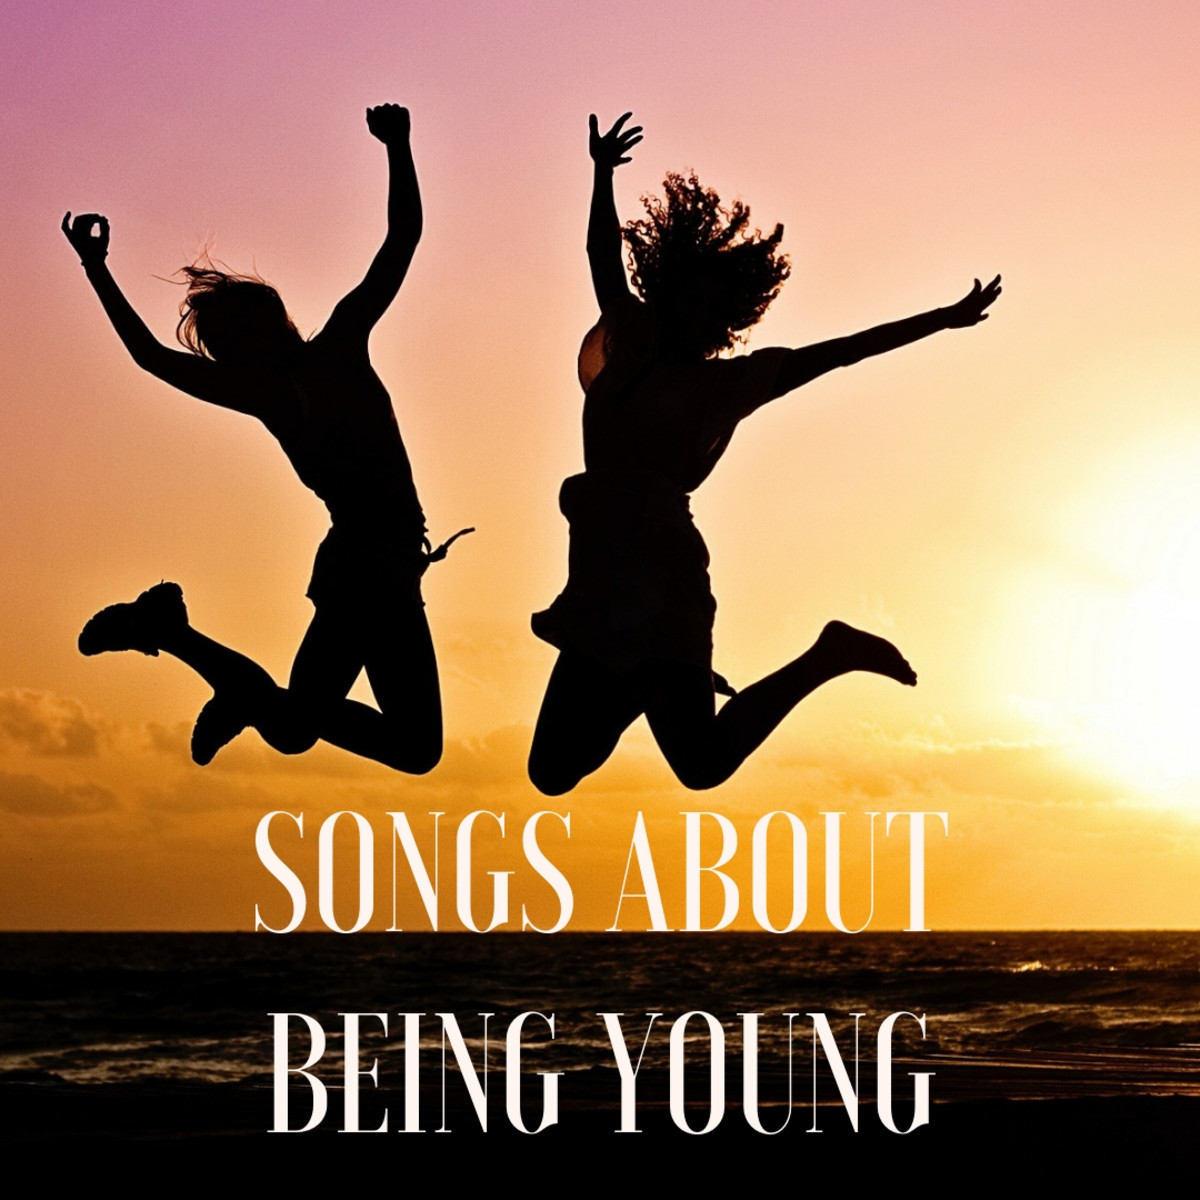 84 Songs About Being Young